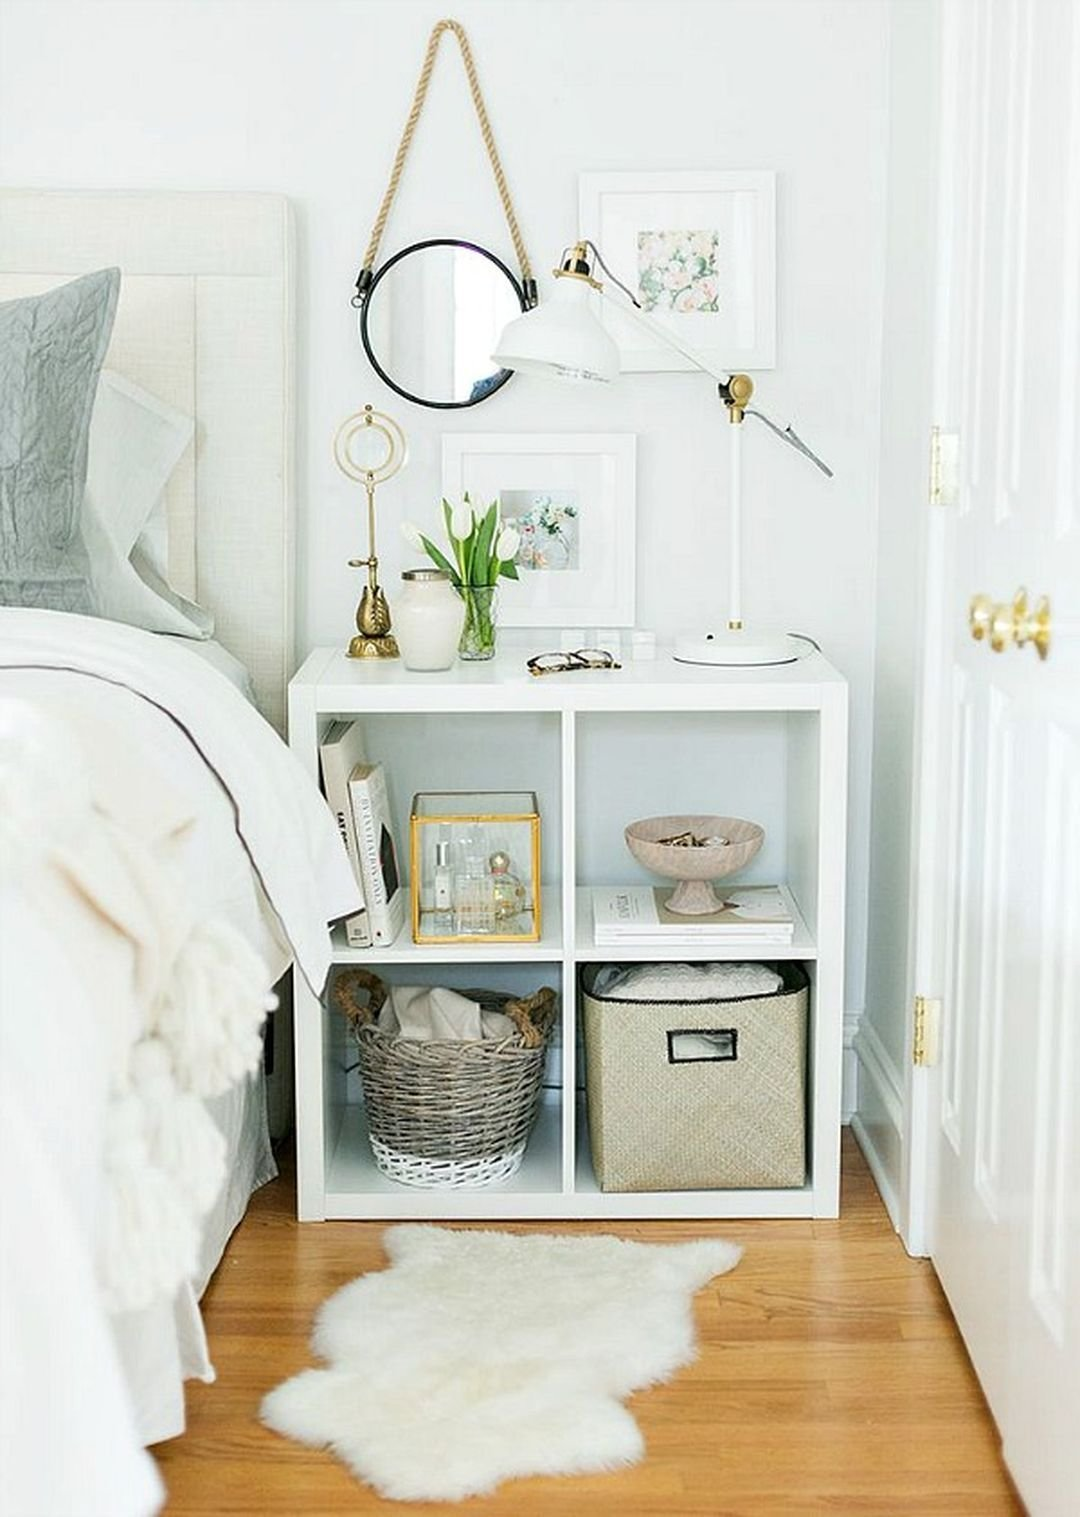 Best Easy Diy Bedroom Storage For Small Space 15 Onechitecture With Pictures